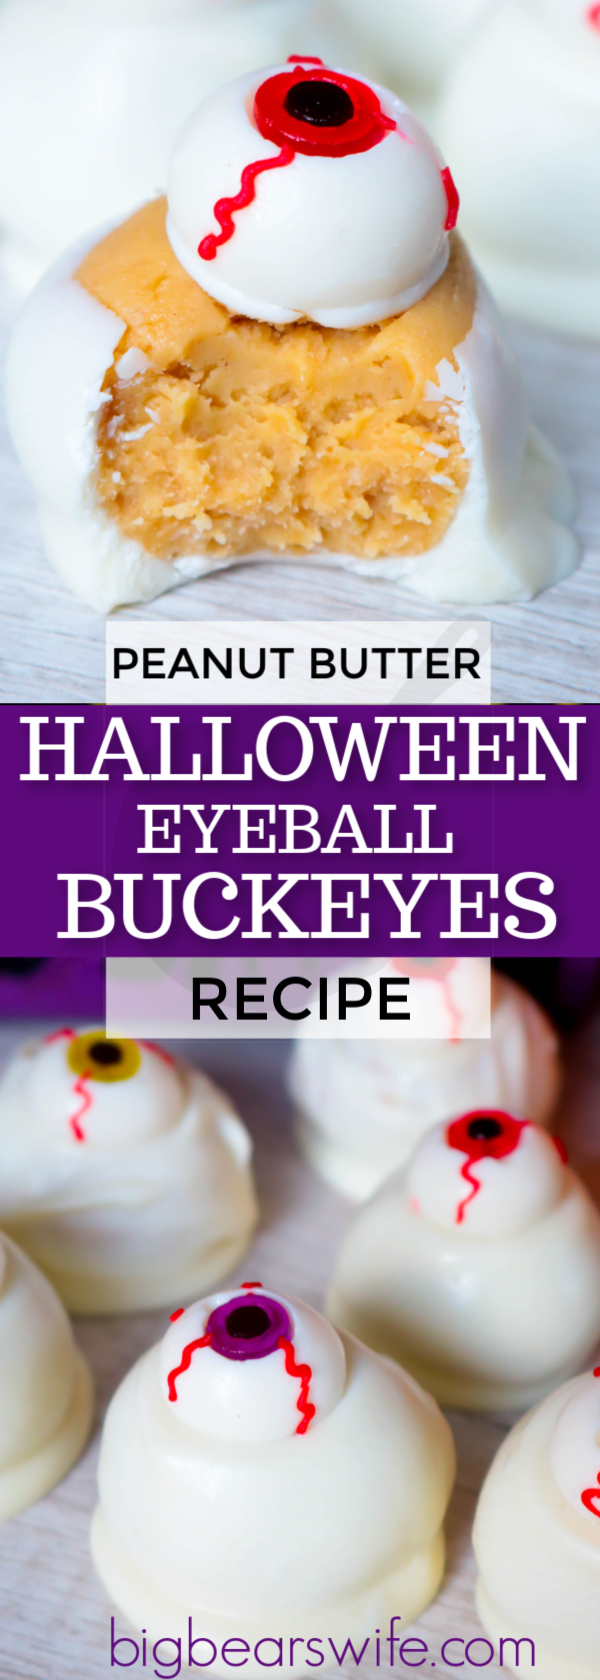 Simple and wickedly tasty peanut butter Halloween eyeball Buckeyes are watching you! I've got the recipe for you and 3 different ideas for decorating them!  #HalloweenCandy #HalloweenPeanutButterBalls #EyeBallDesserts